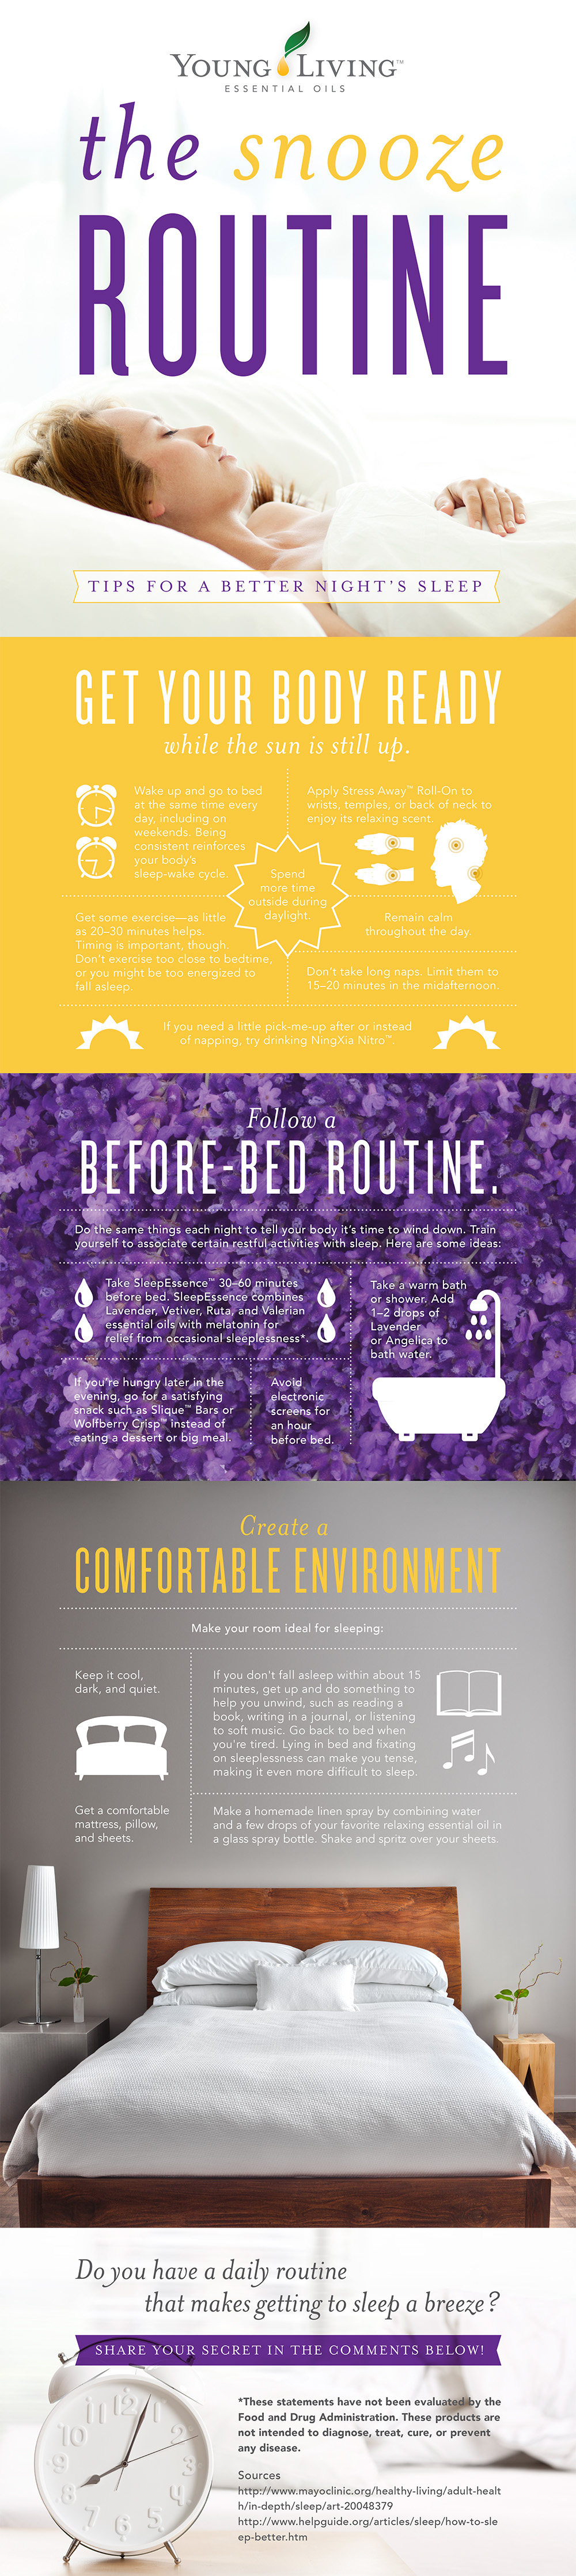 Young Living Essential Oils Tips for a Better Night's Sleep